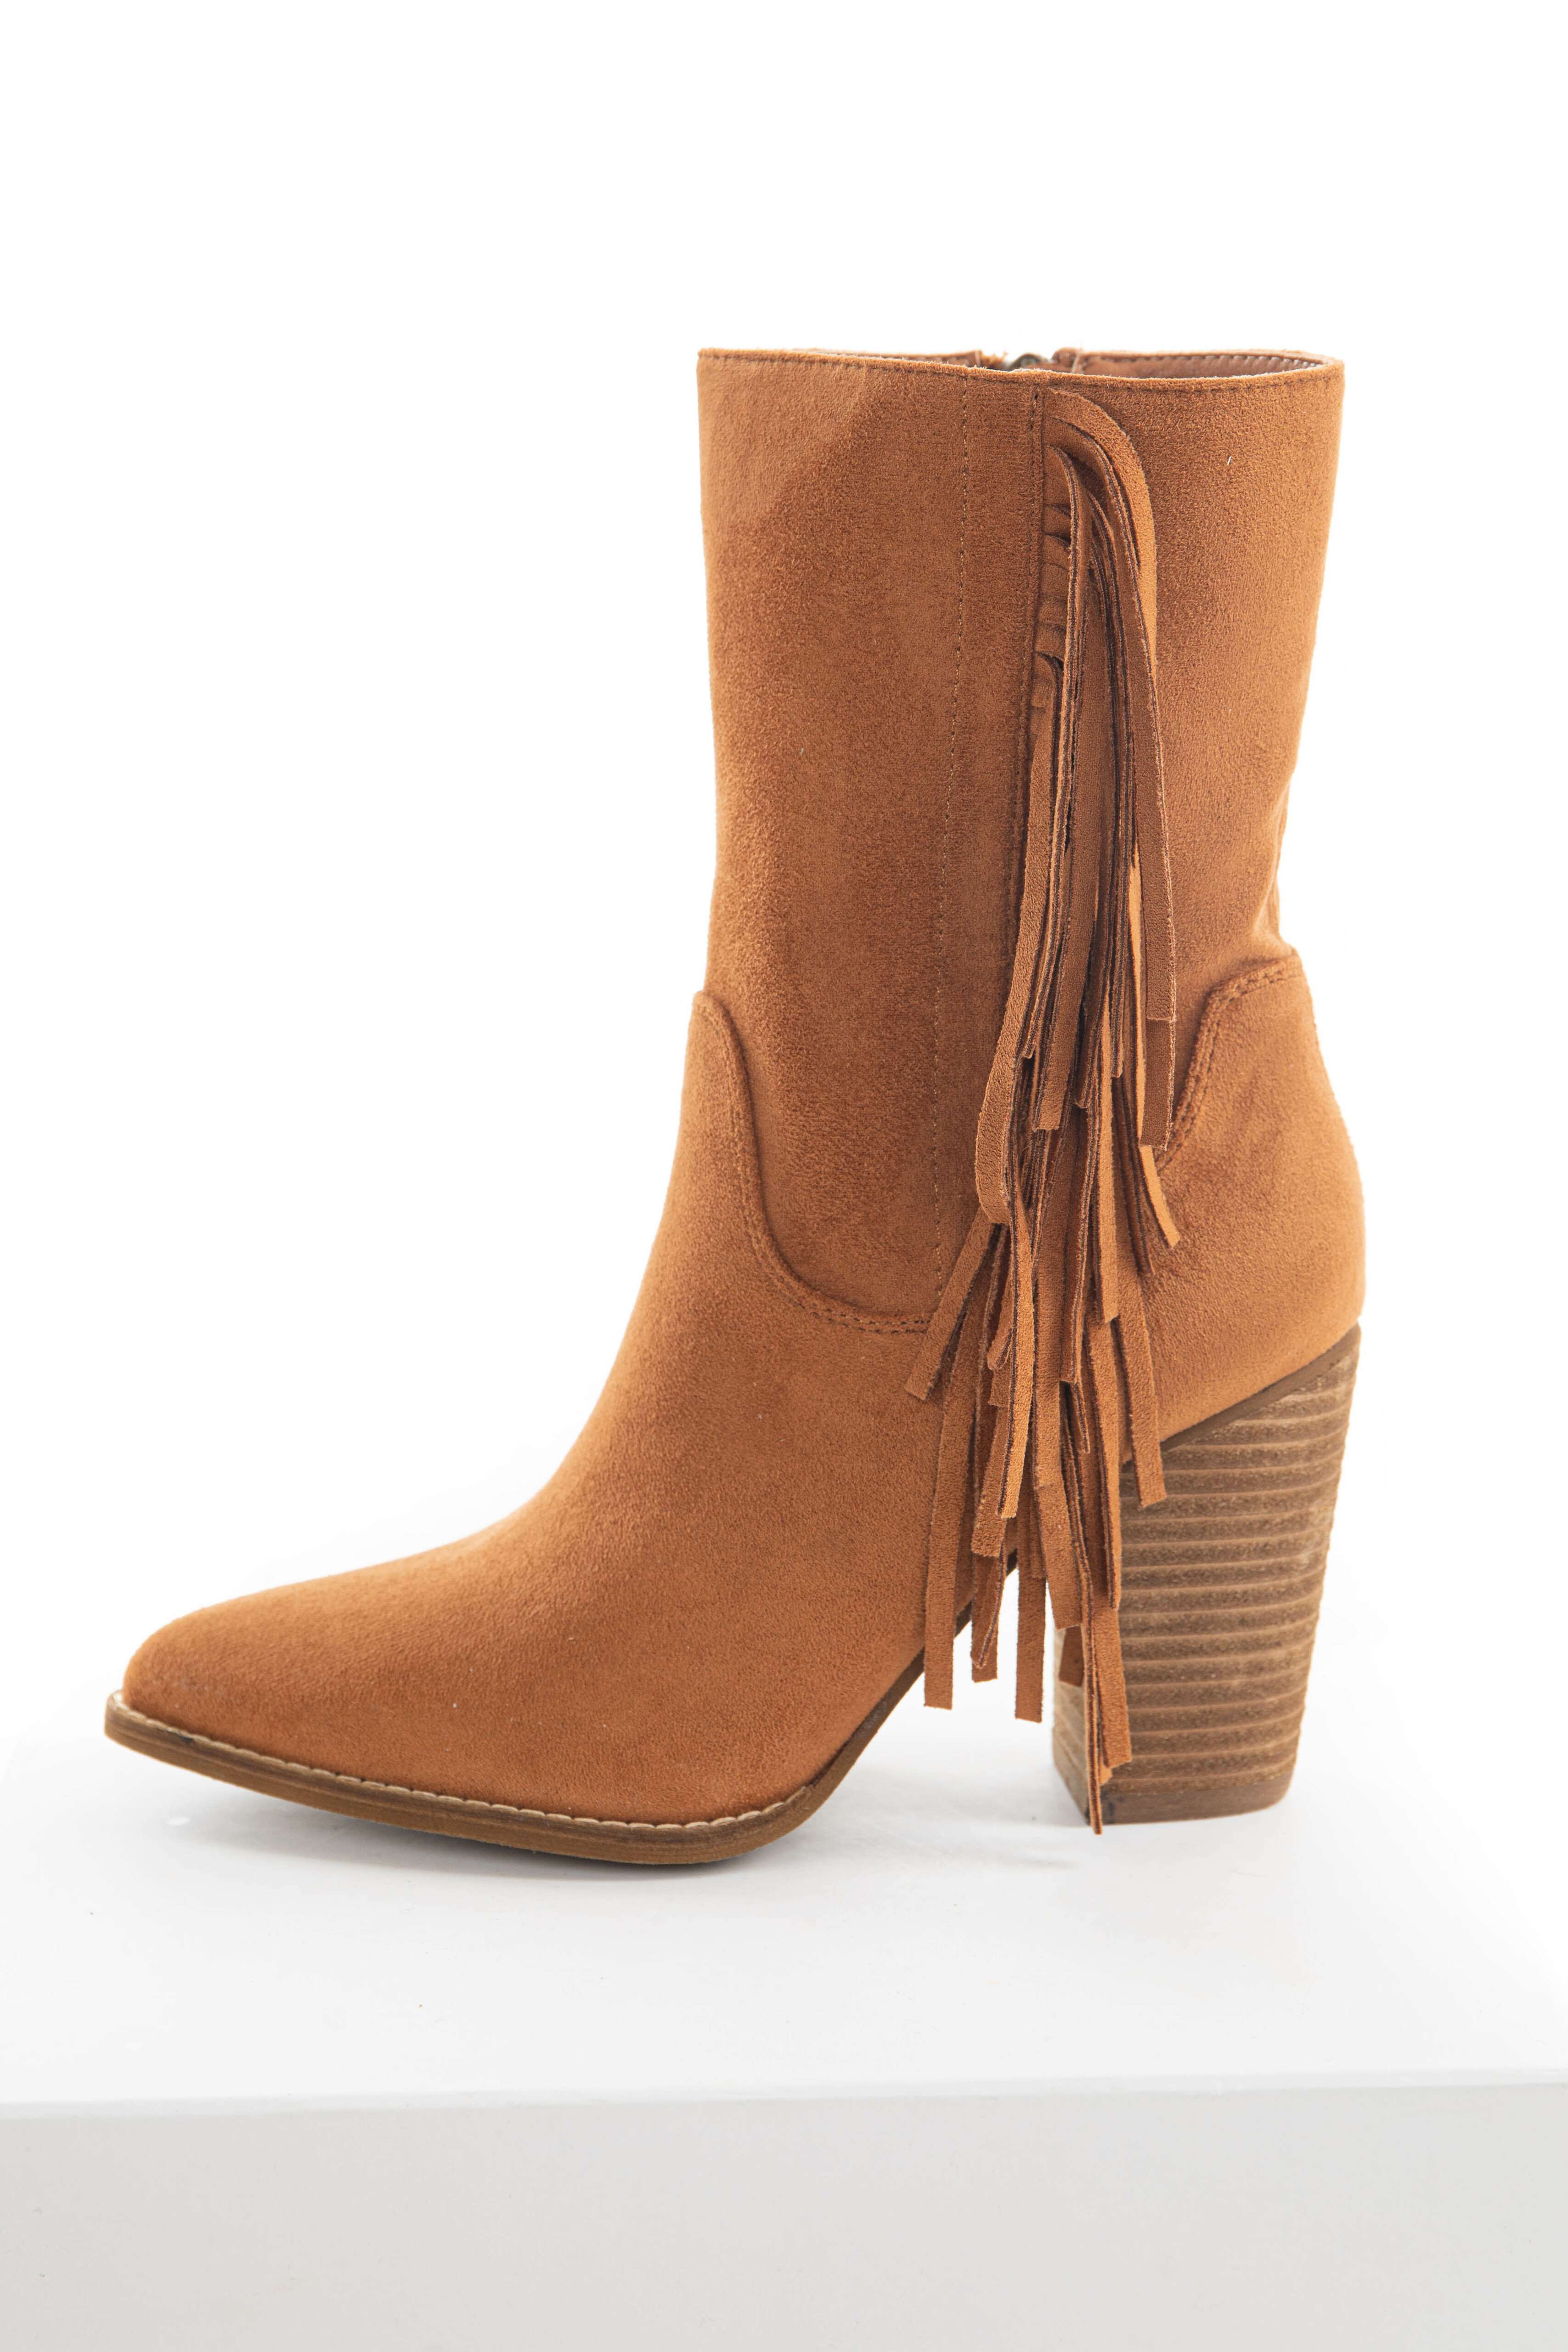 Caramel Fringe Pointed Toe Mid Calf Boots